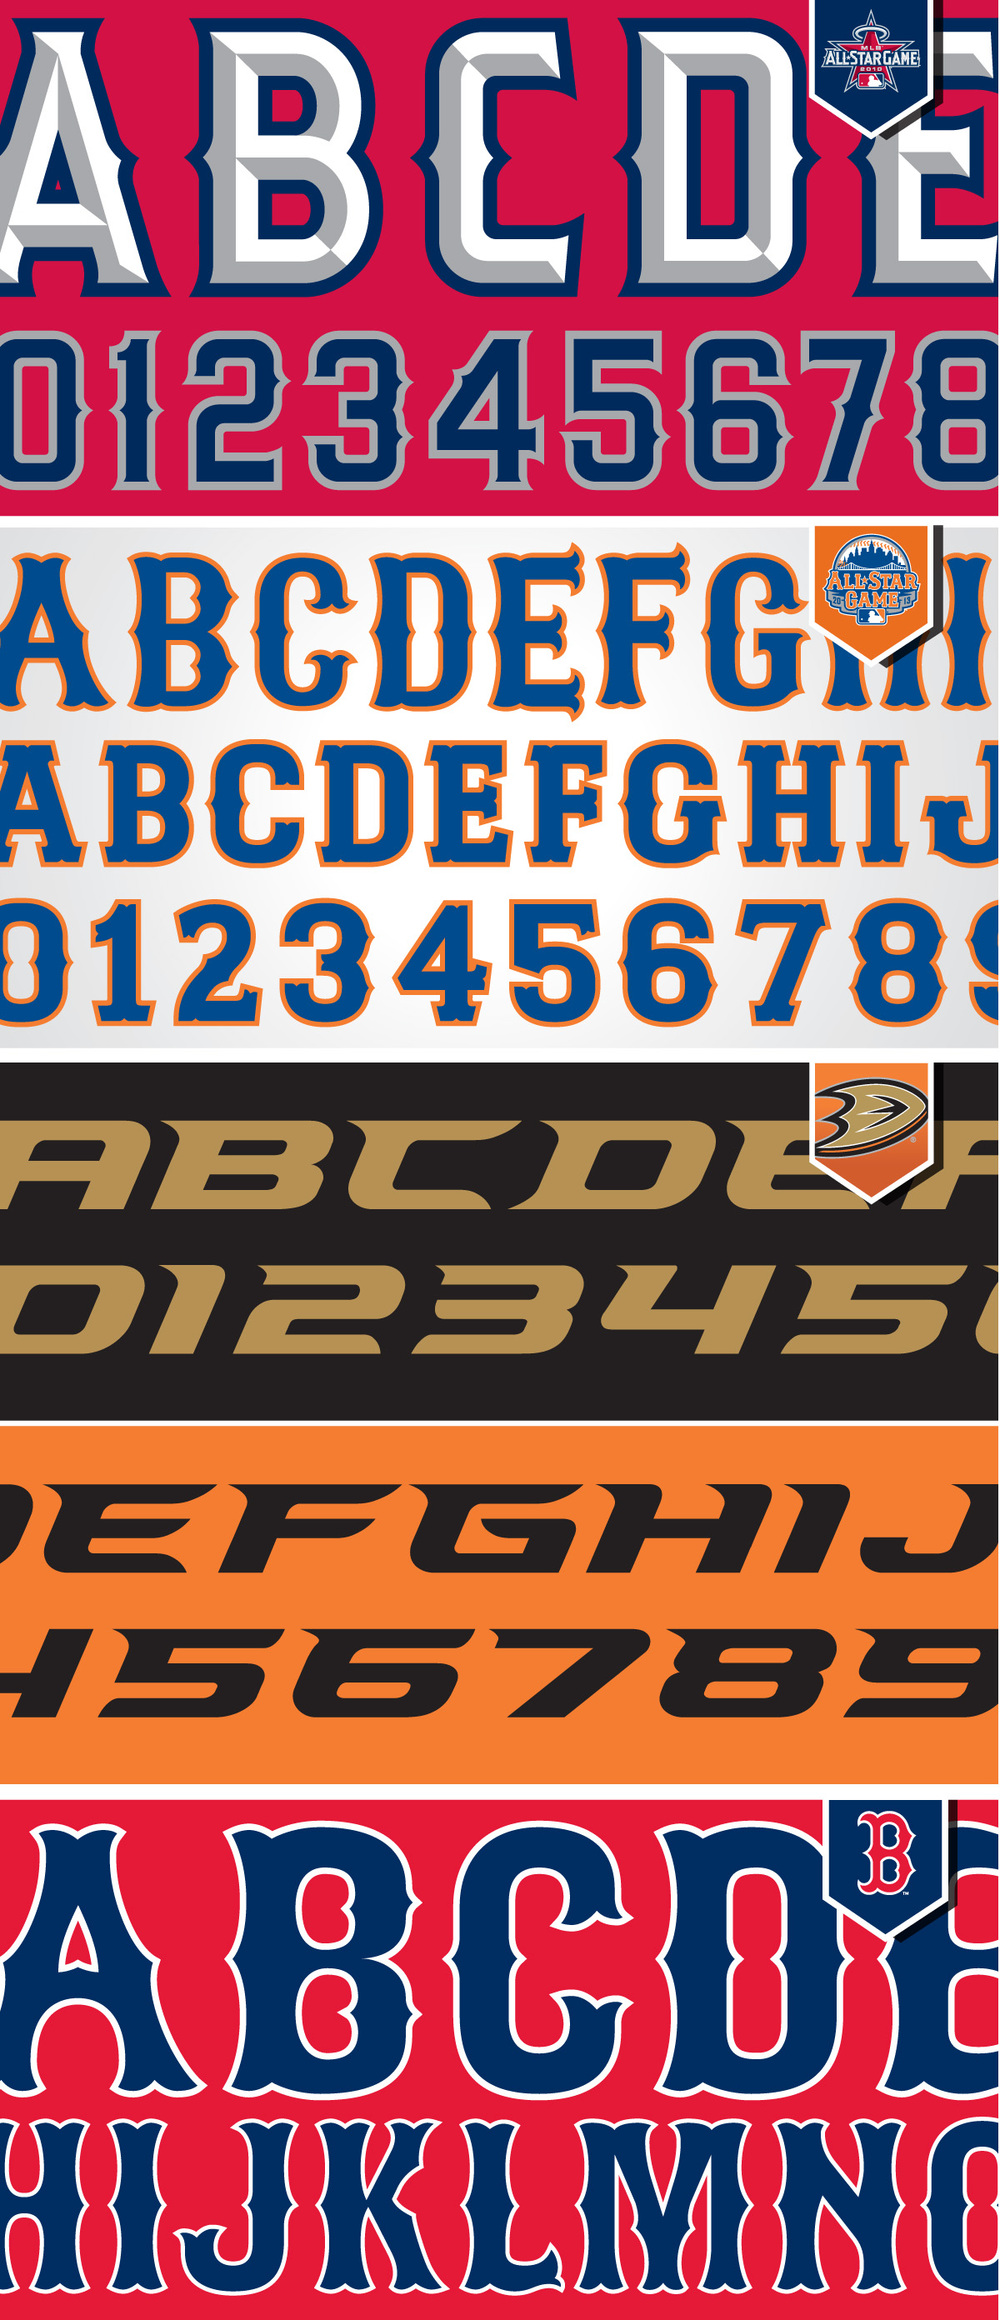 Fanbrandz_Custom_Fonts_Typography_2.jpg